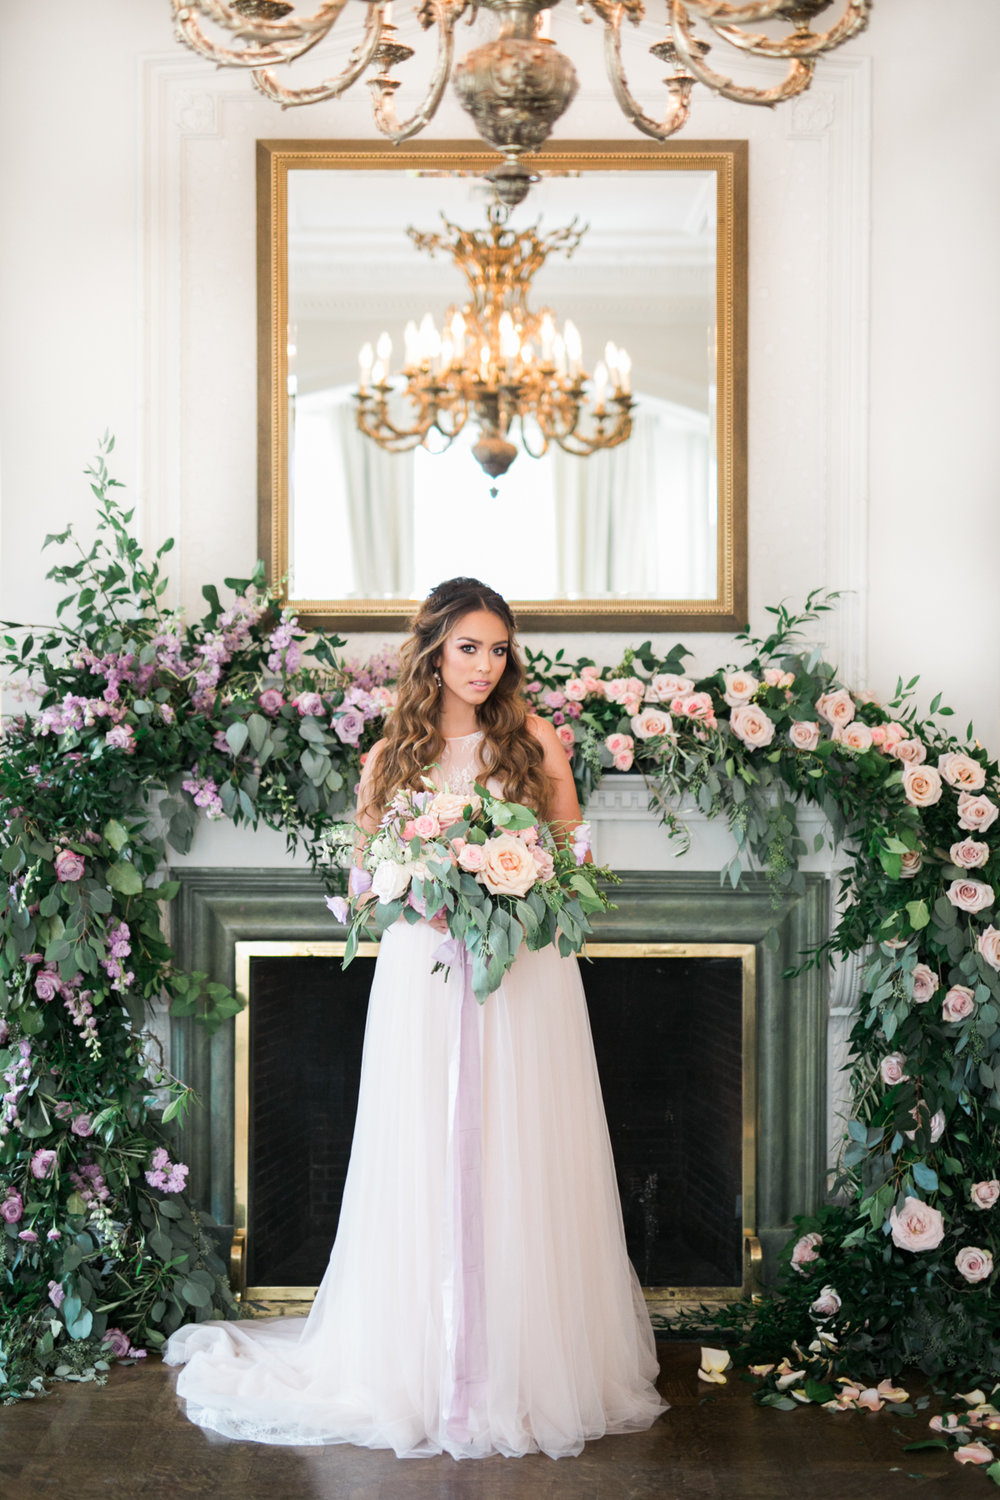 Ceremony with lush garland - Fairytale Wedding (Wedluxe)